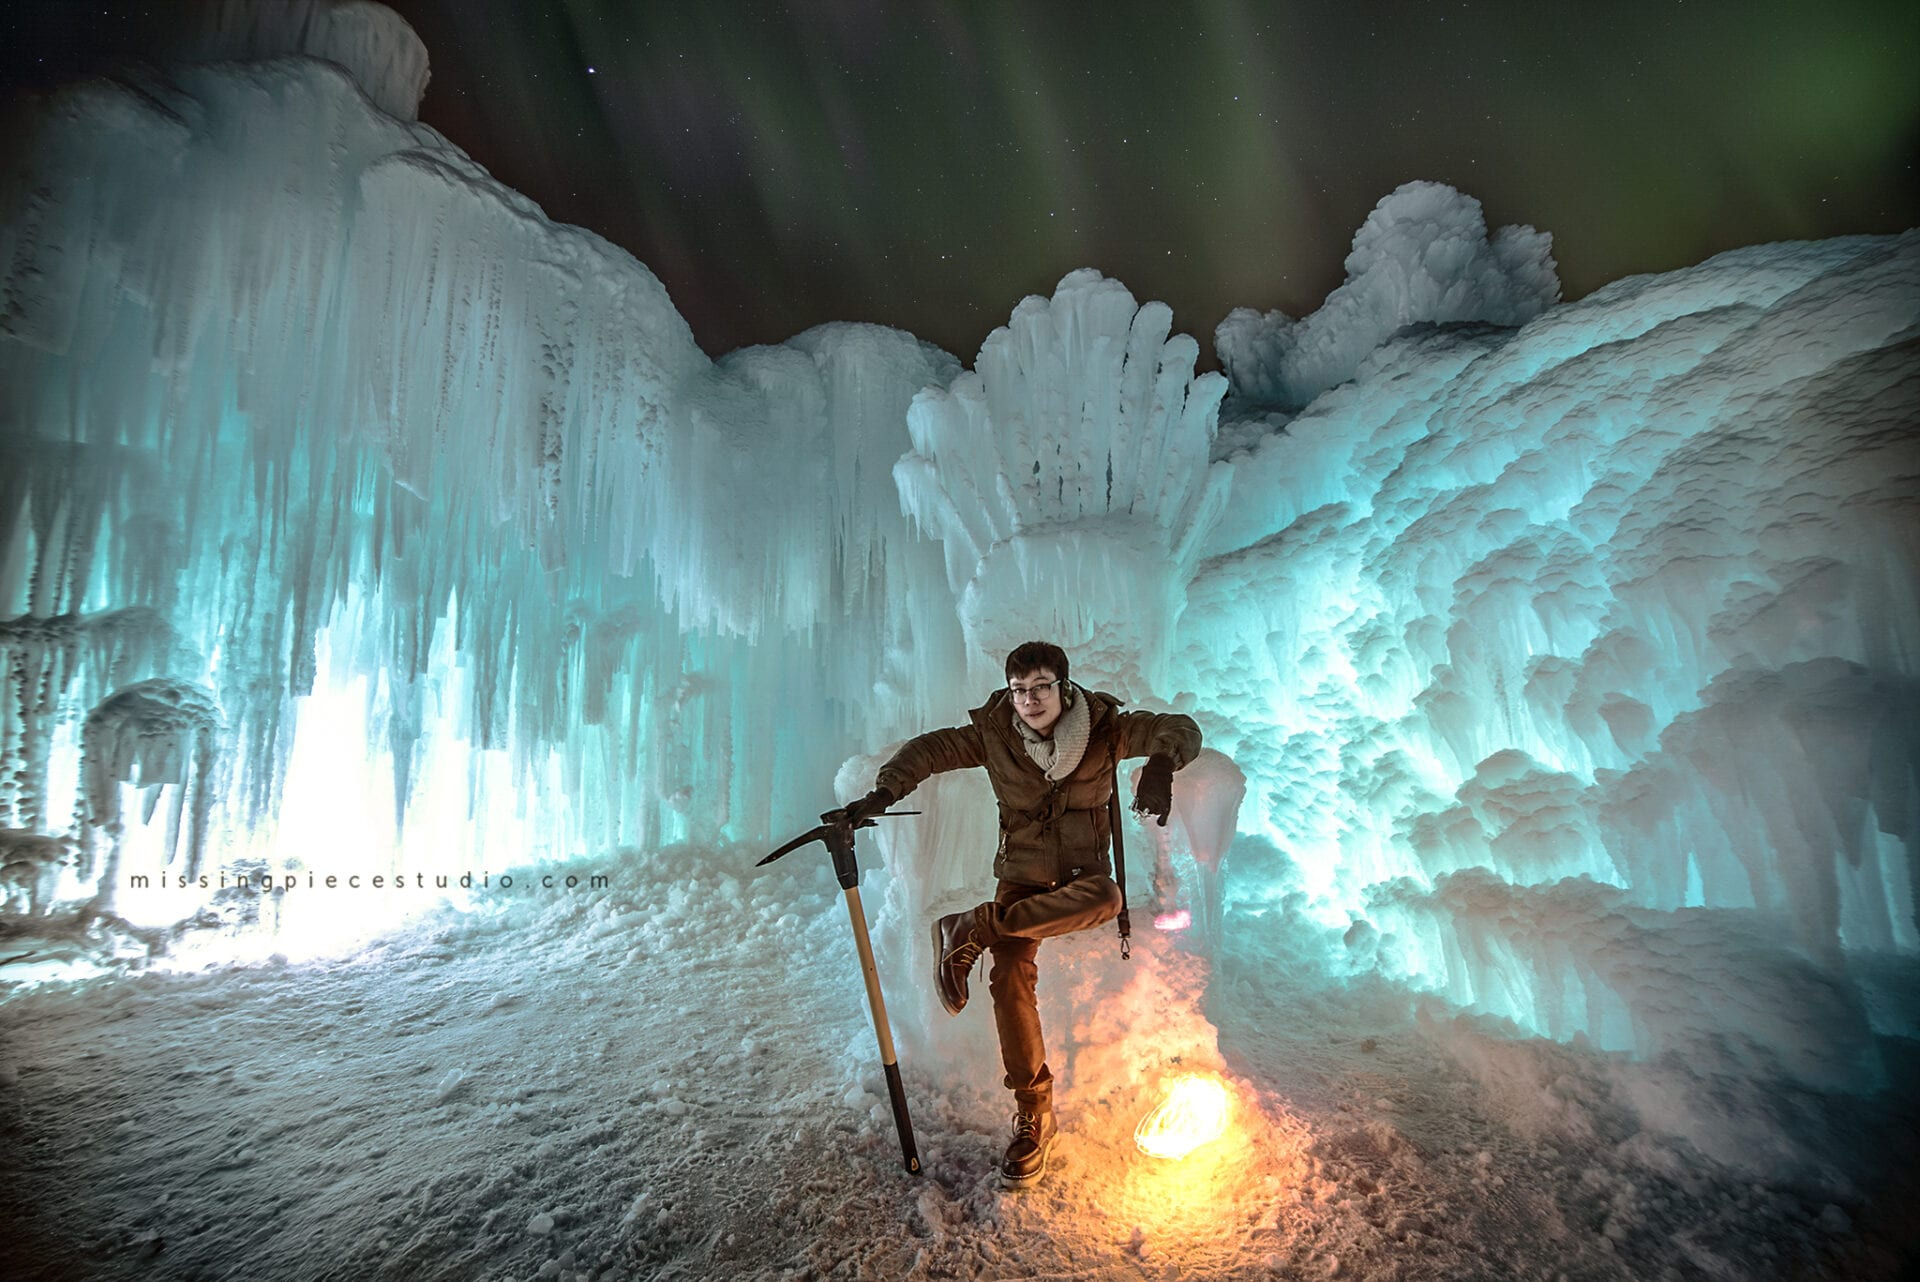 Photographer takes a photo of himself on the ice throne at the Edmonton Ice Castles